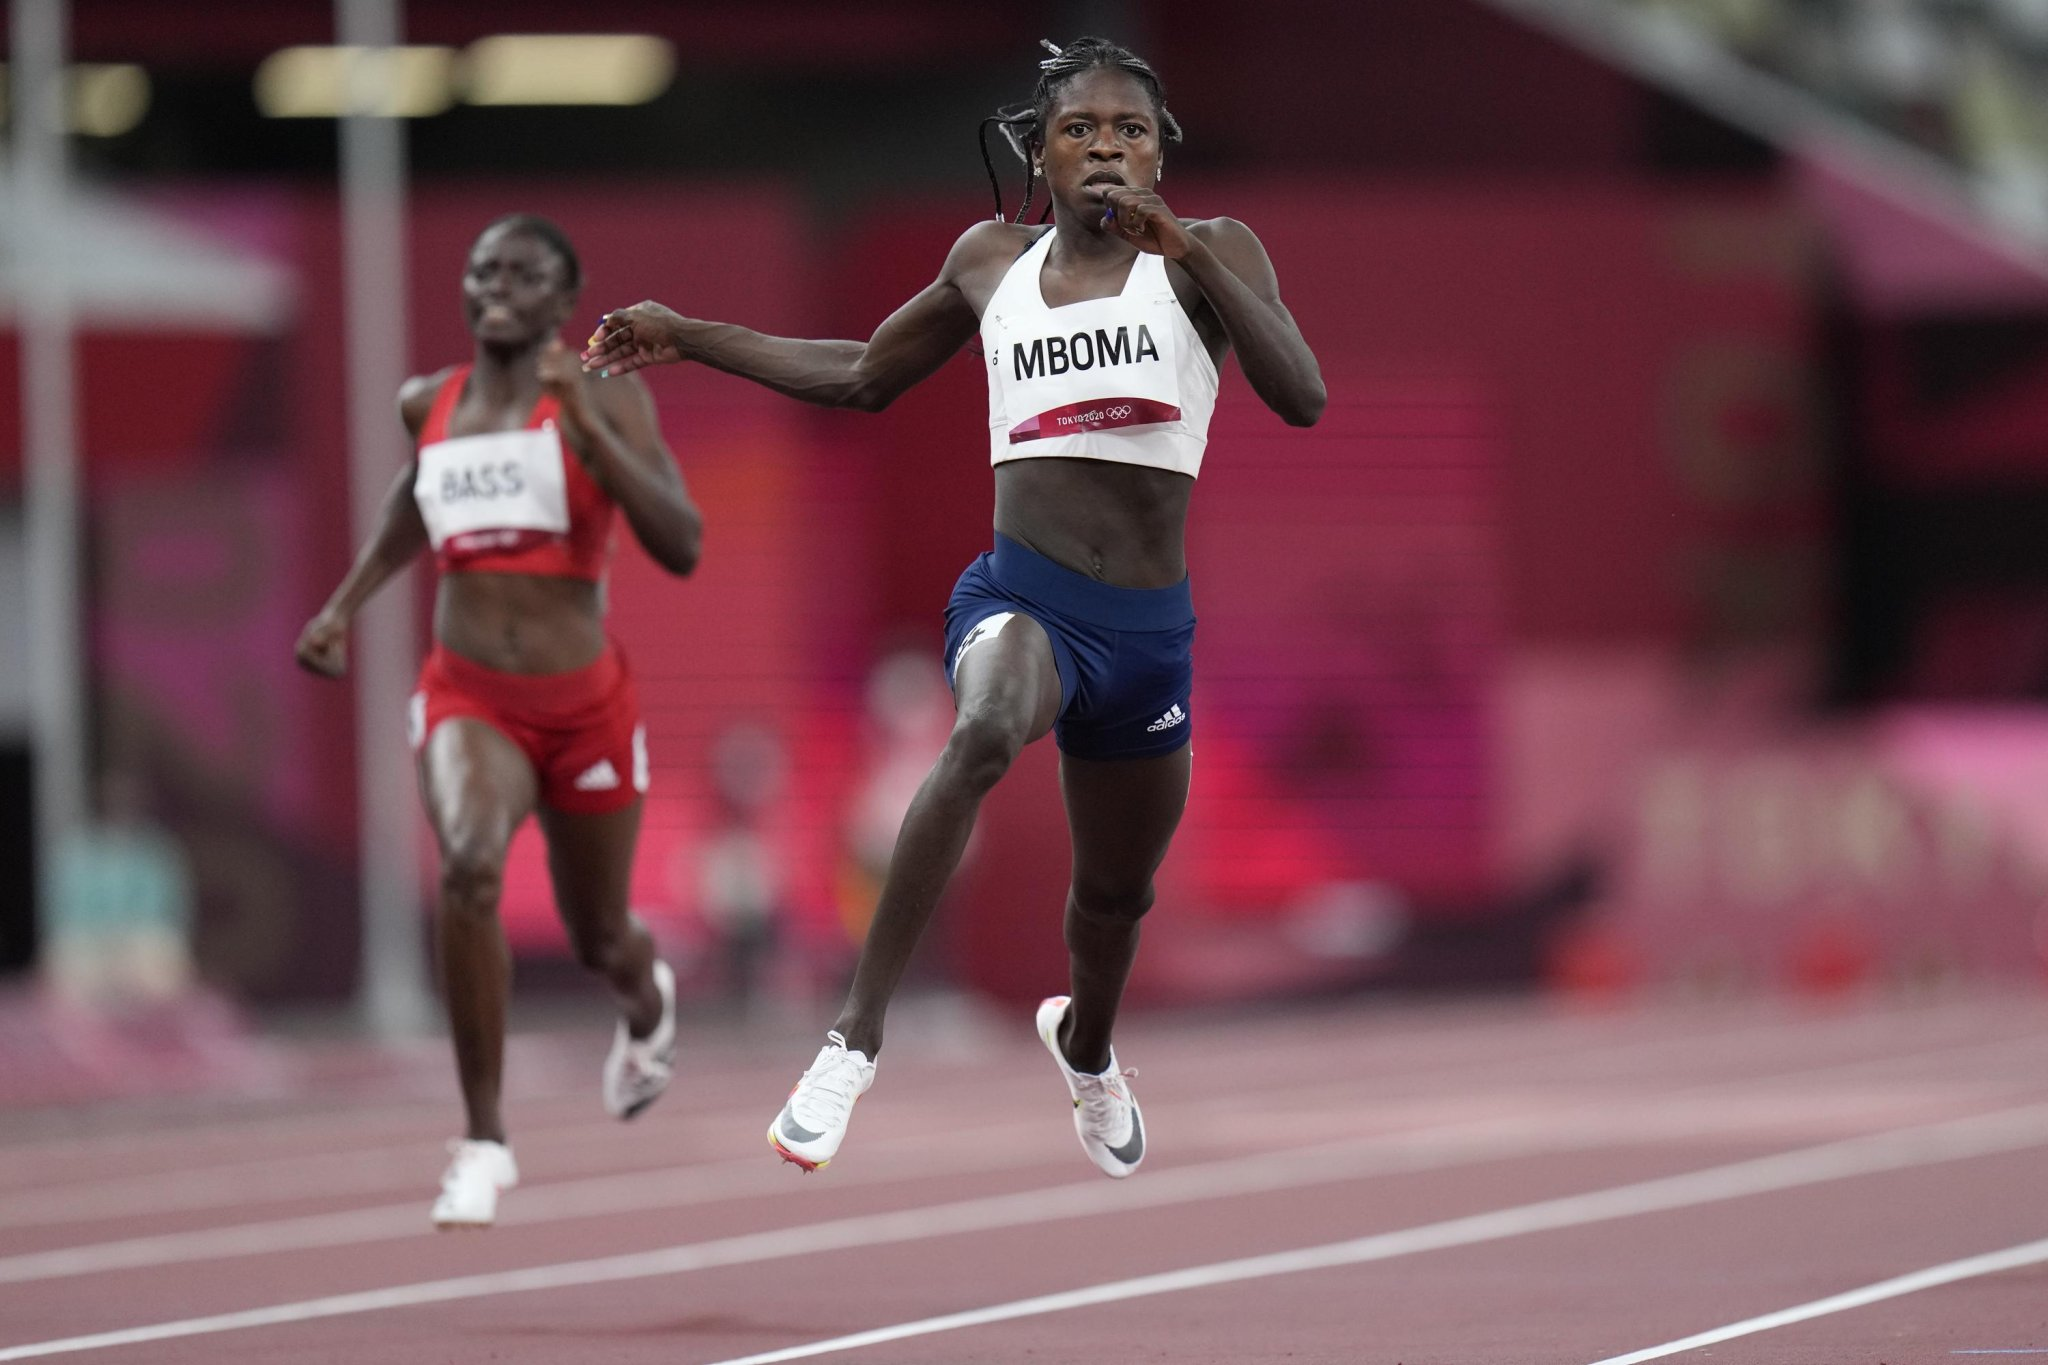 Teenagers make 200 final in Olympic testosterone controversy